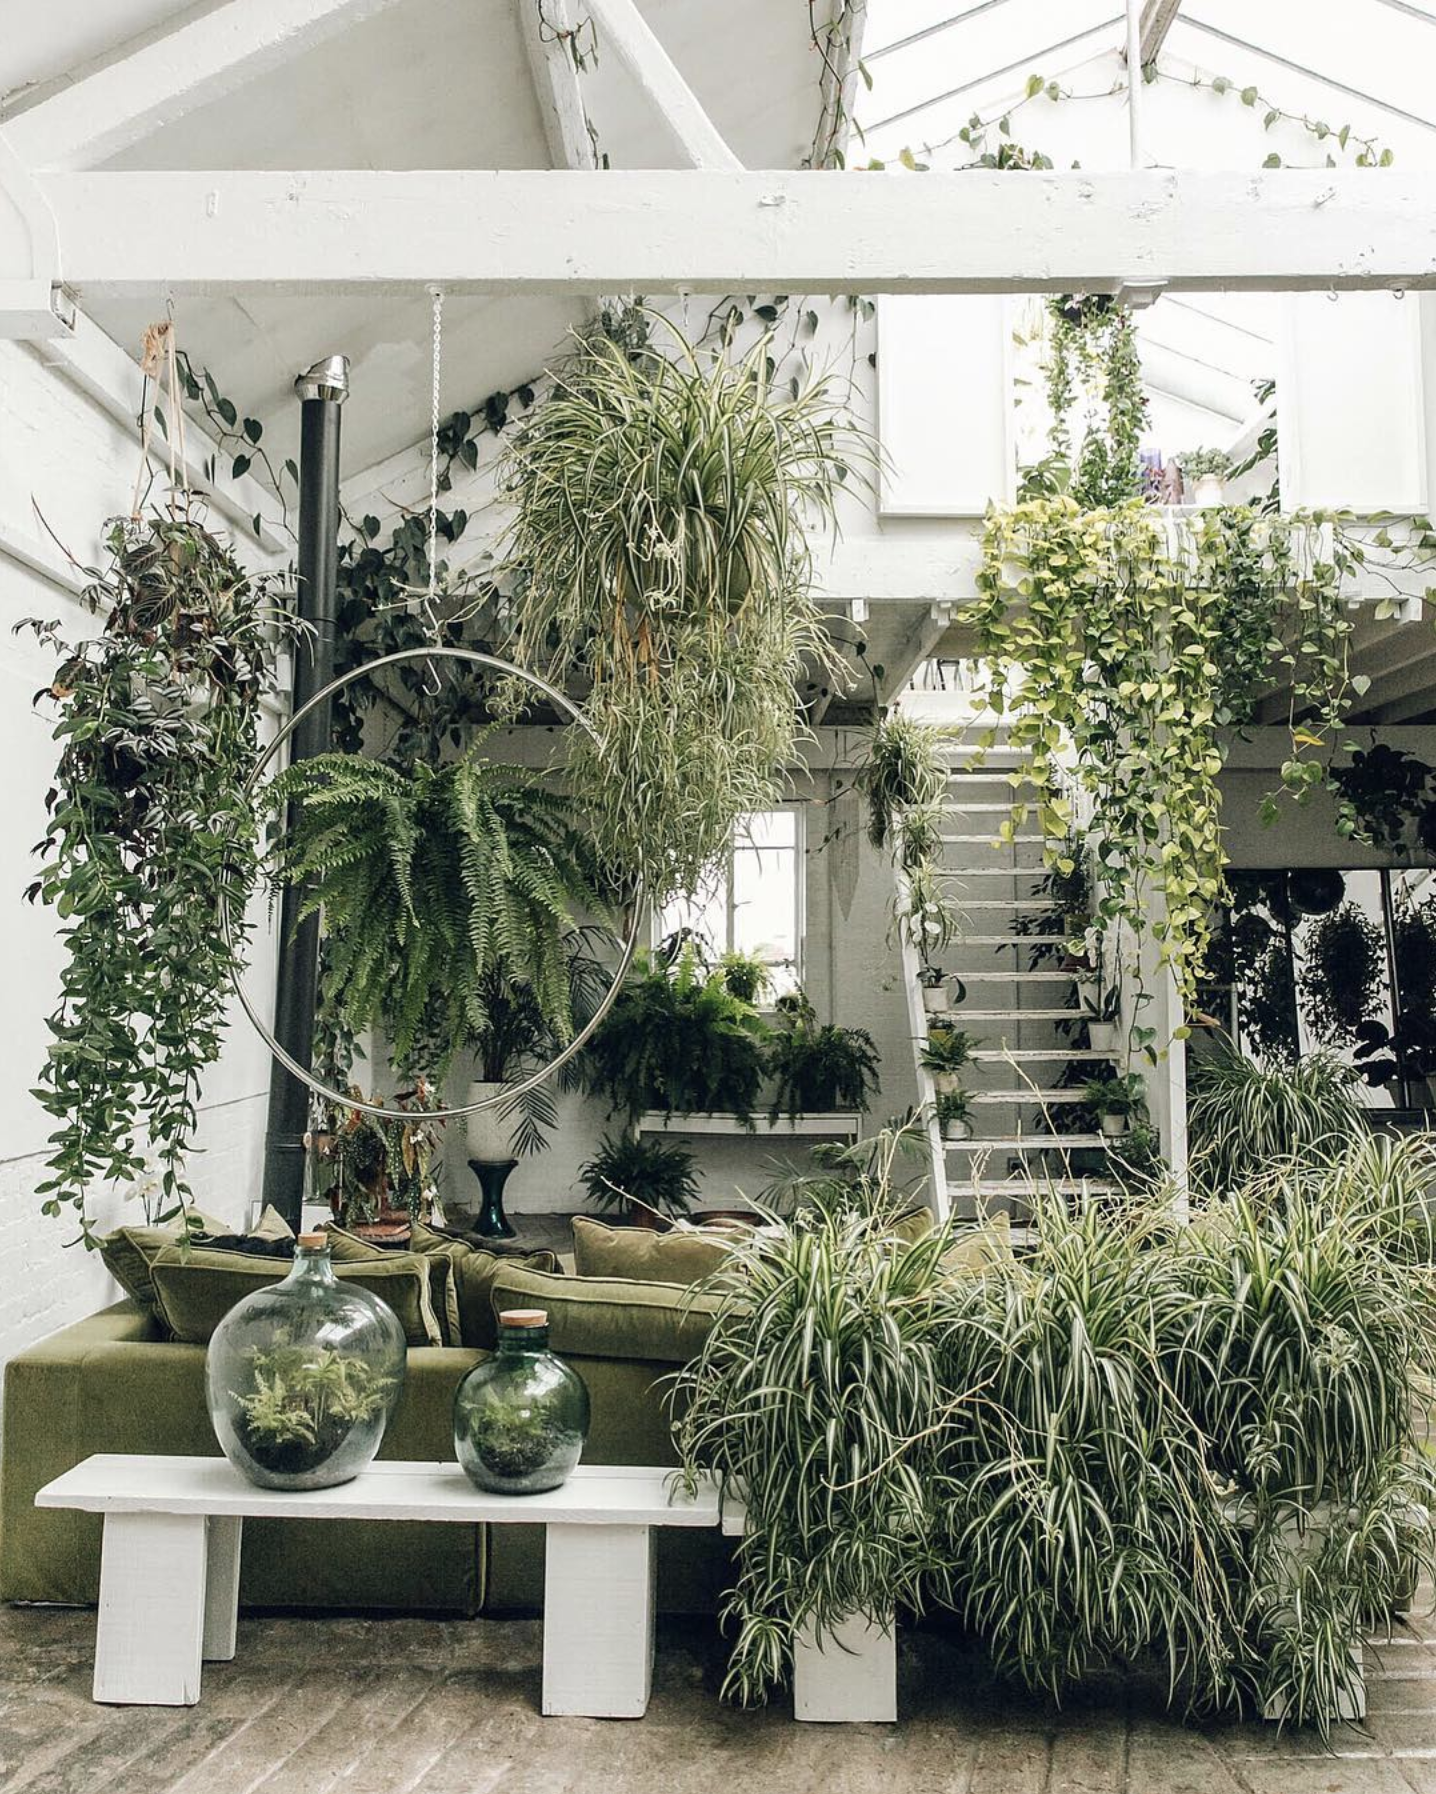 Source . When can I move in? #plantladydreamhome